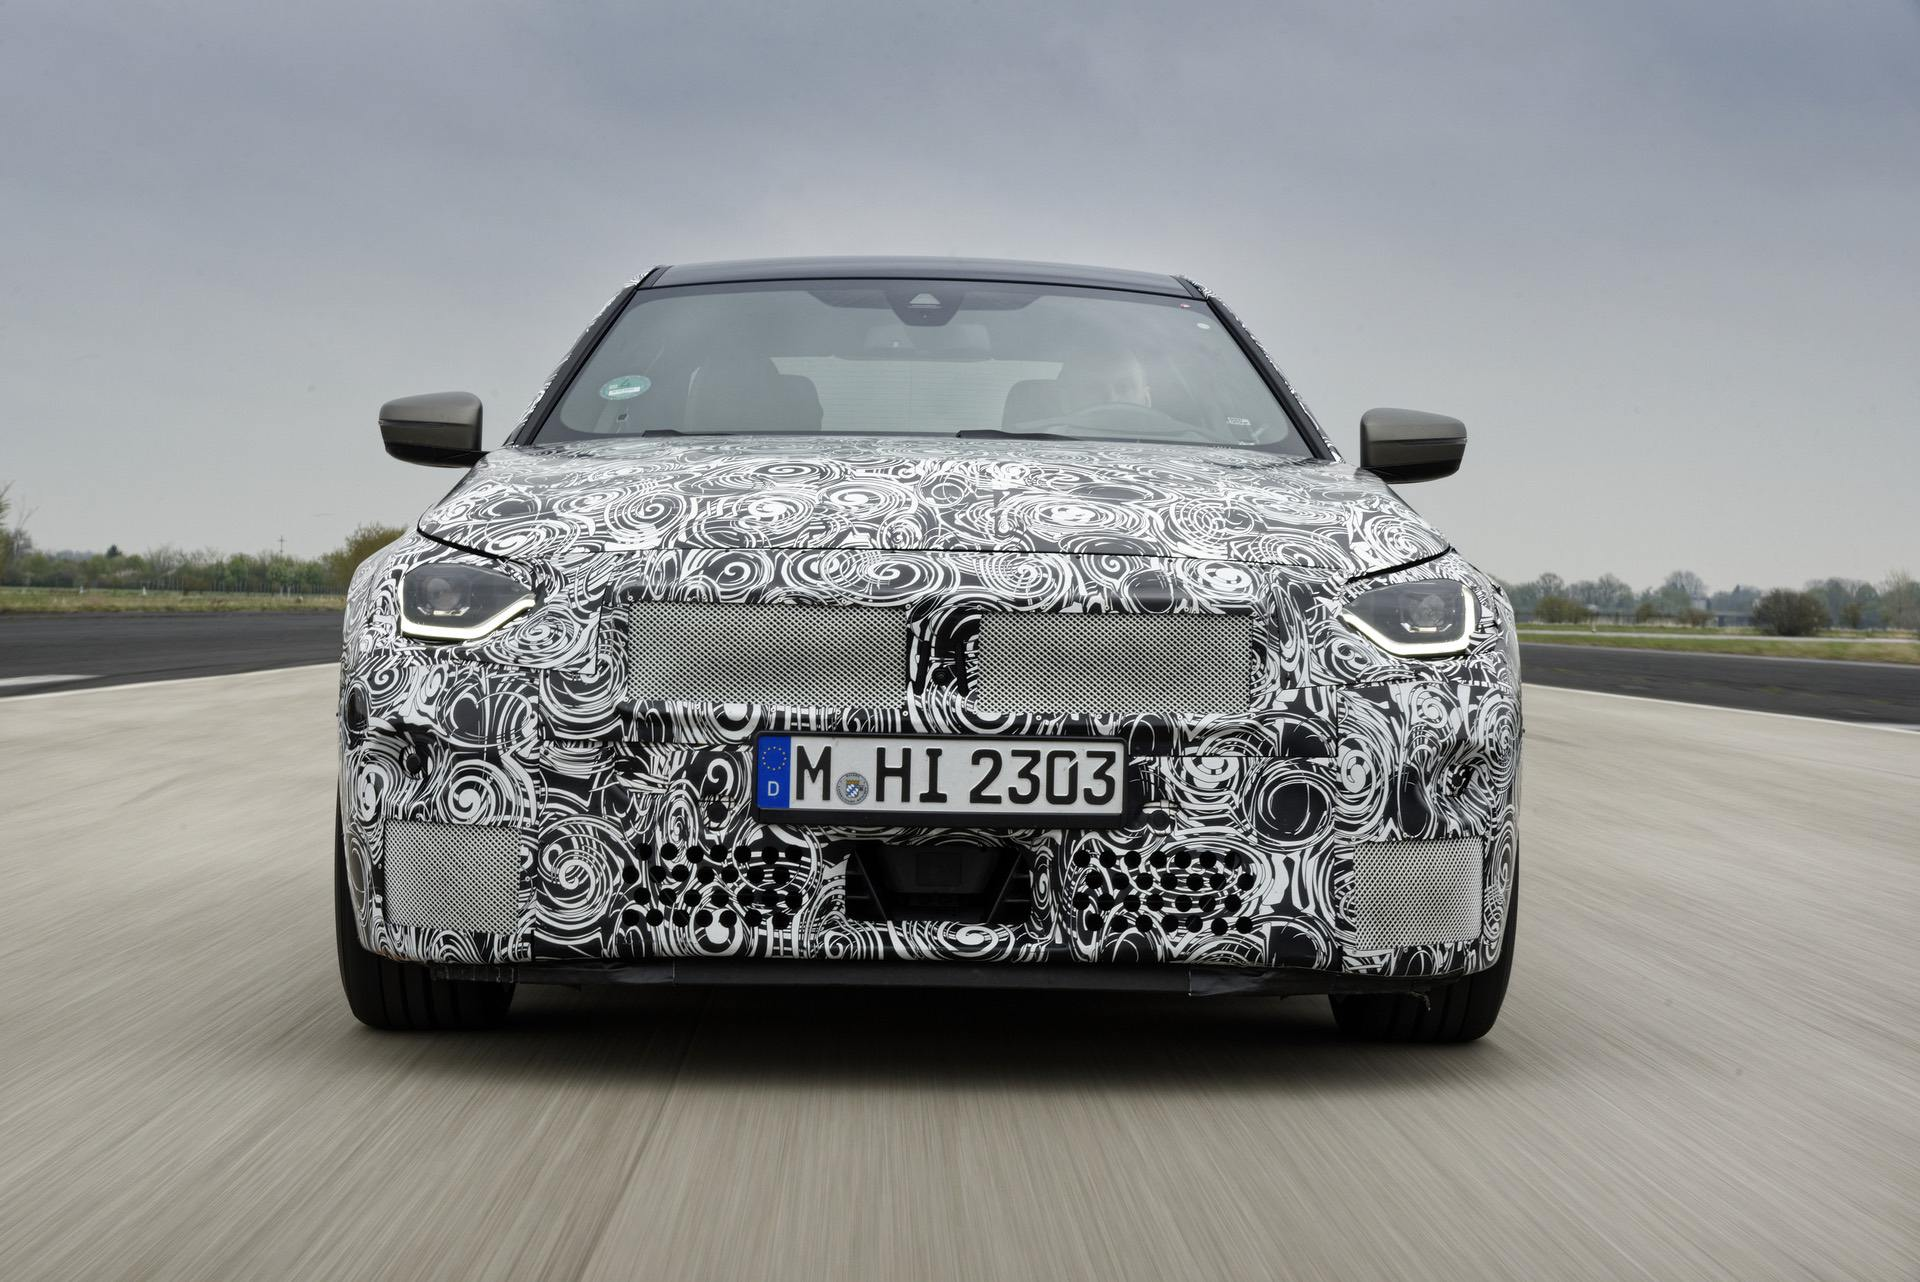 Upcoming BMW 2 Series Coupe RWD appears with a camouflage